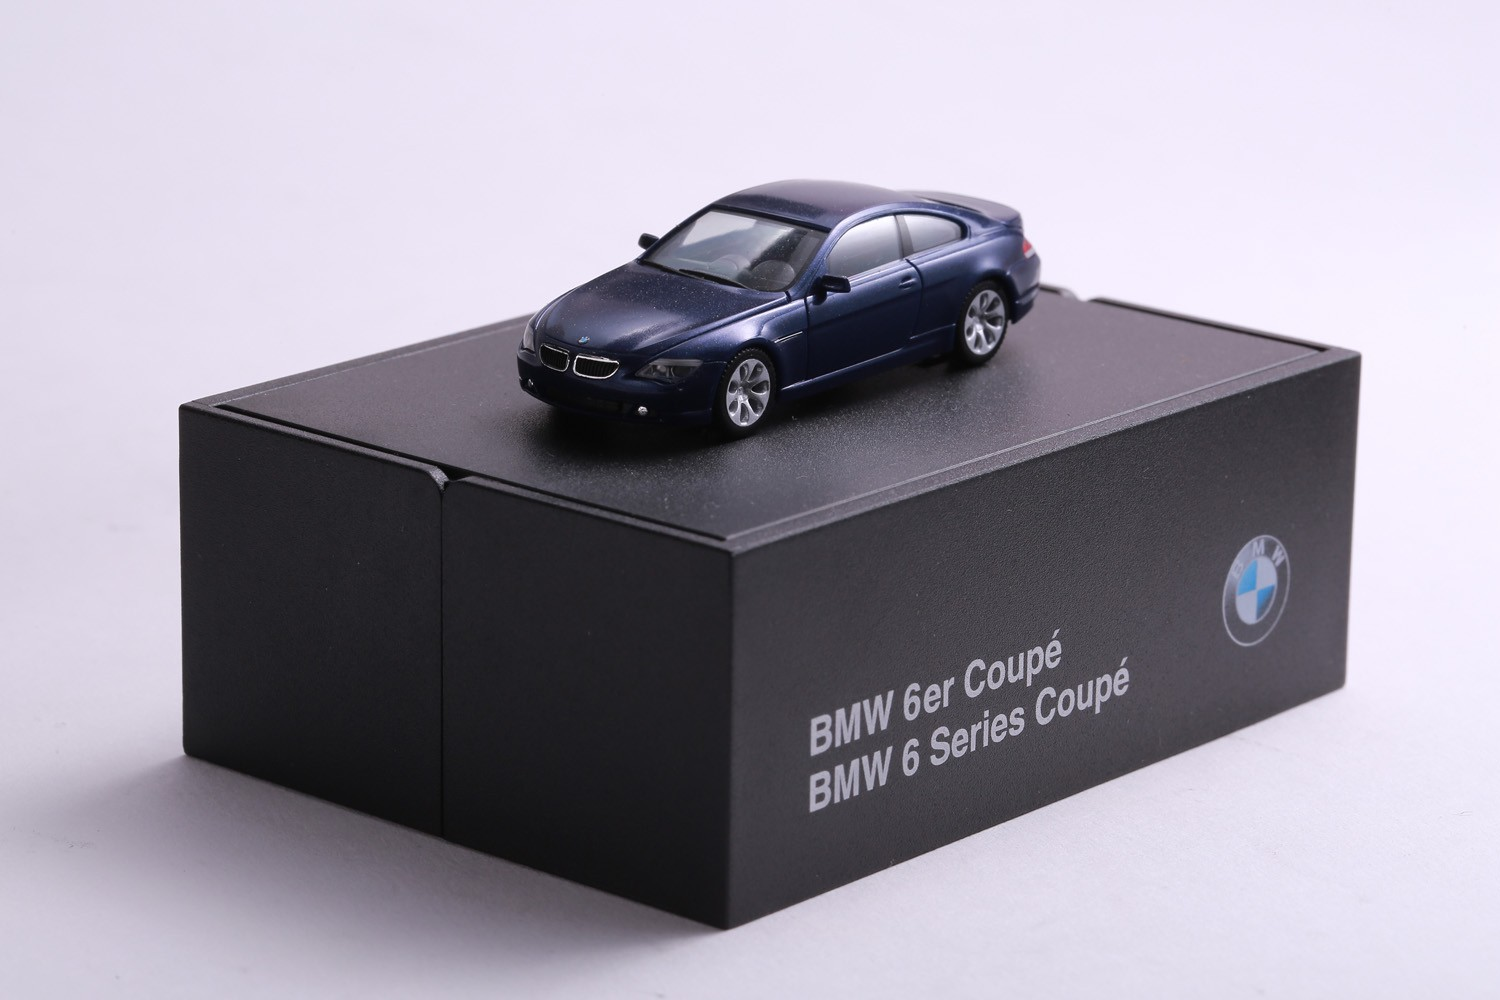 BMW 6ER COUPE (BMW 6 SERIES COUPE – 80410 153276 – BLUE